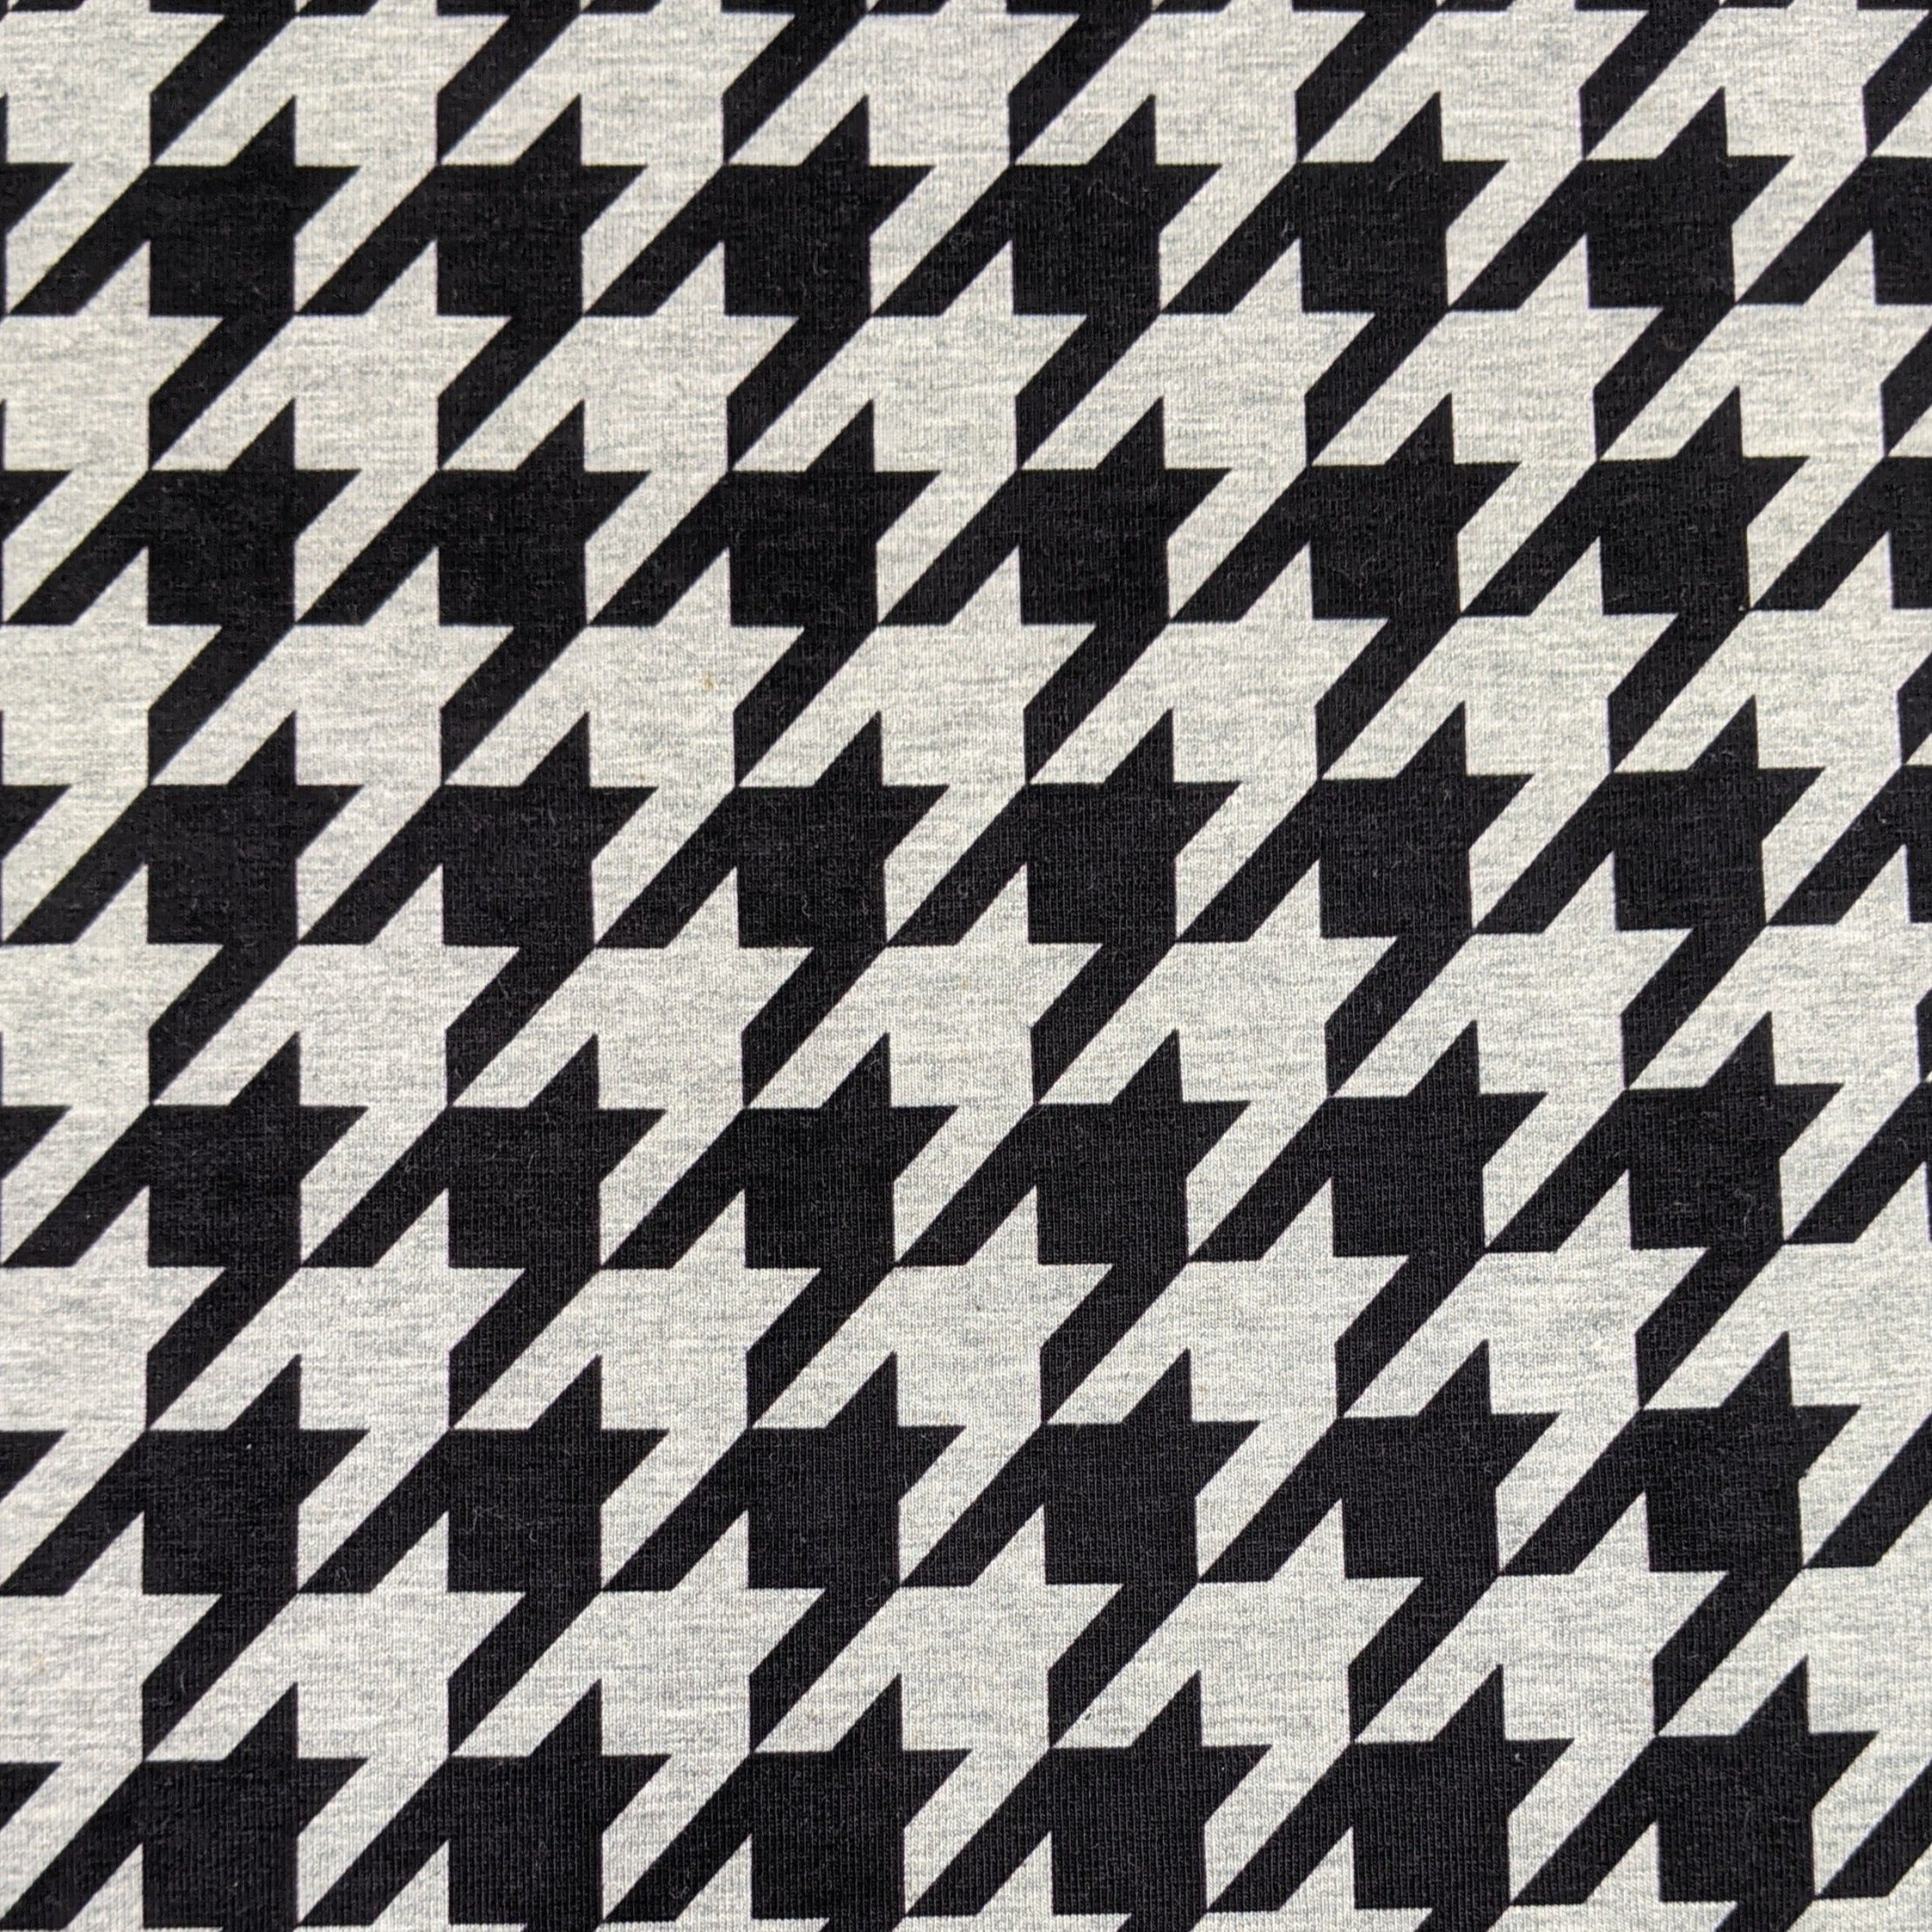 Houndstooth - Large Scale on Heather Gray  - Jersey Knit